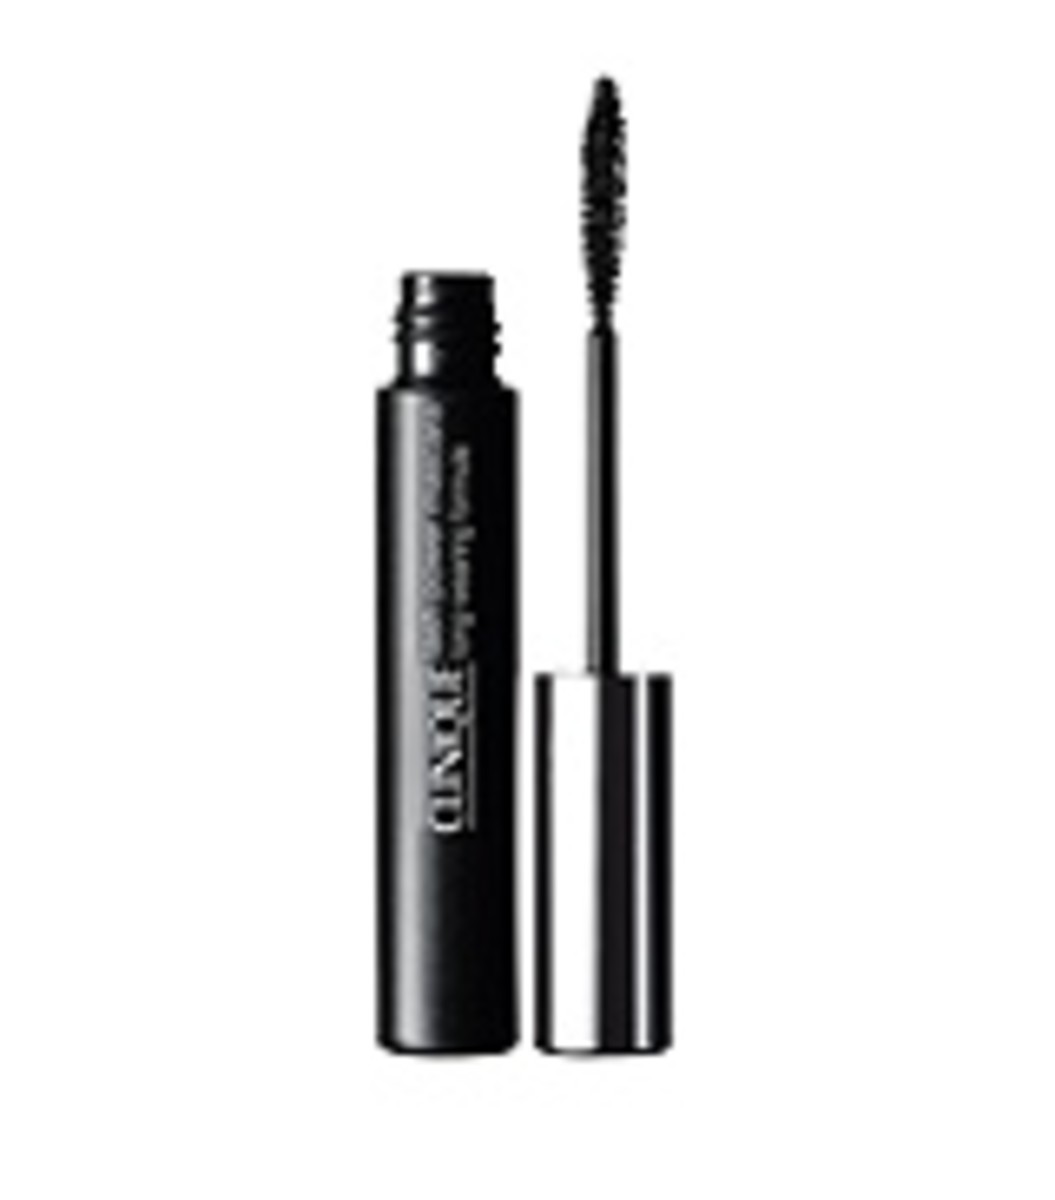 The Long-Wear Lash Intensifier mascara by Clinique was our pick for the best waterproof product.